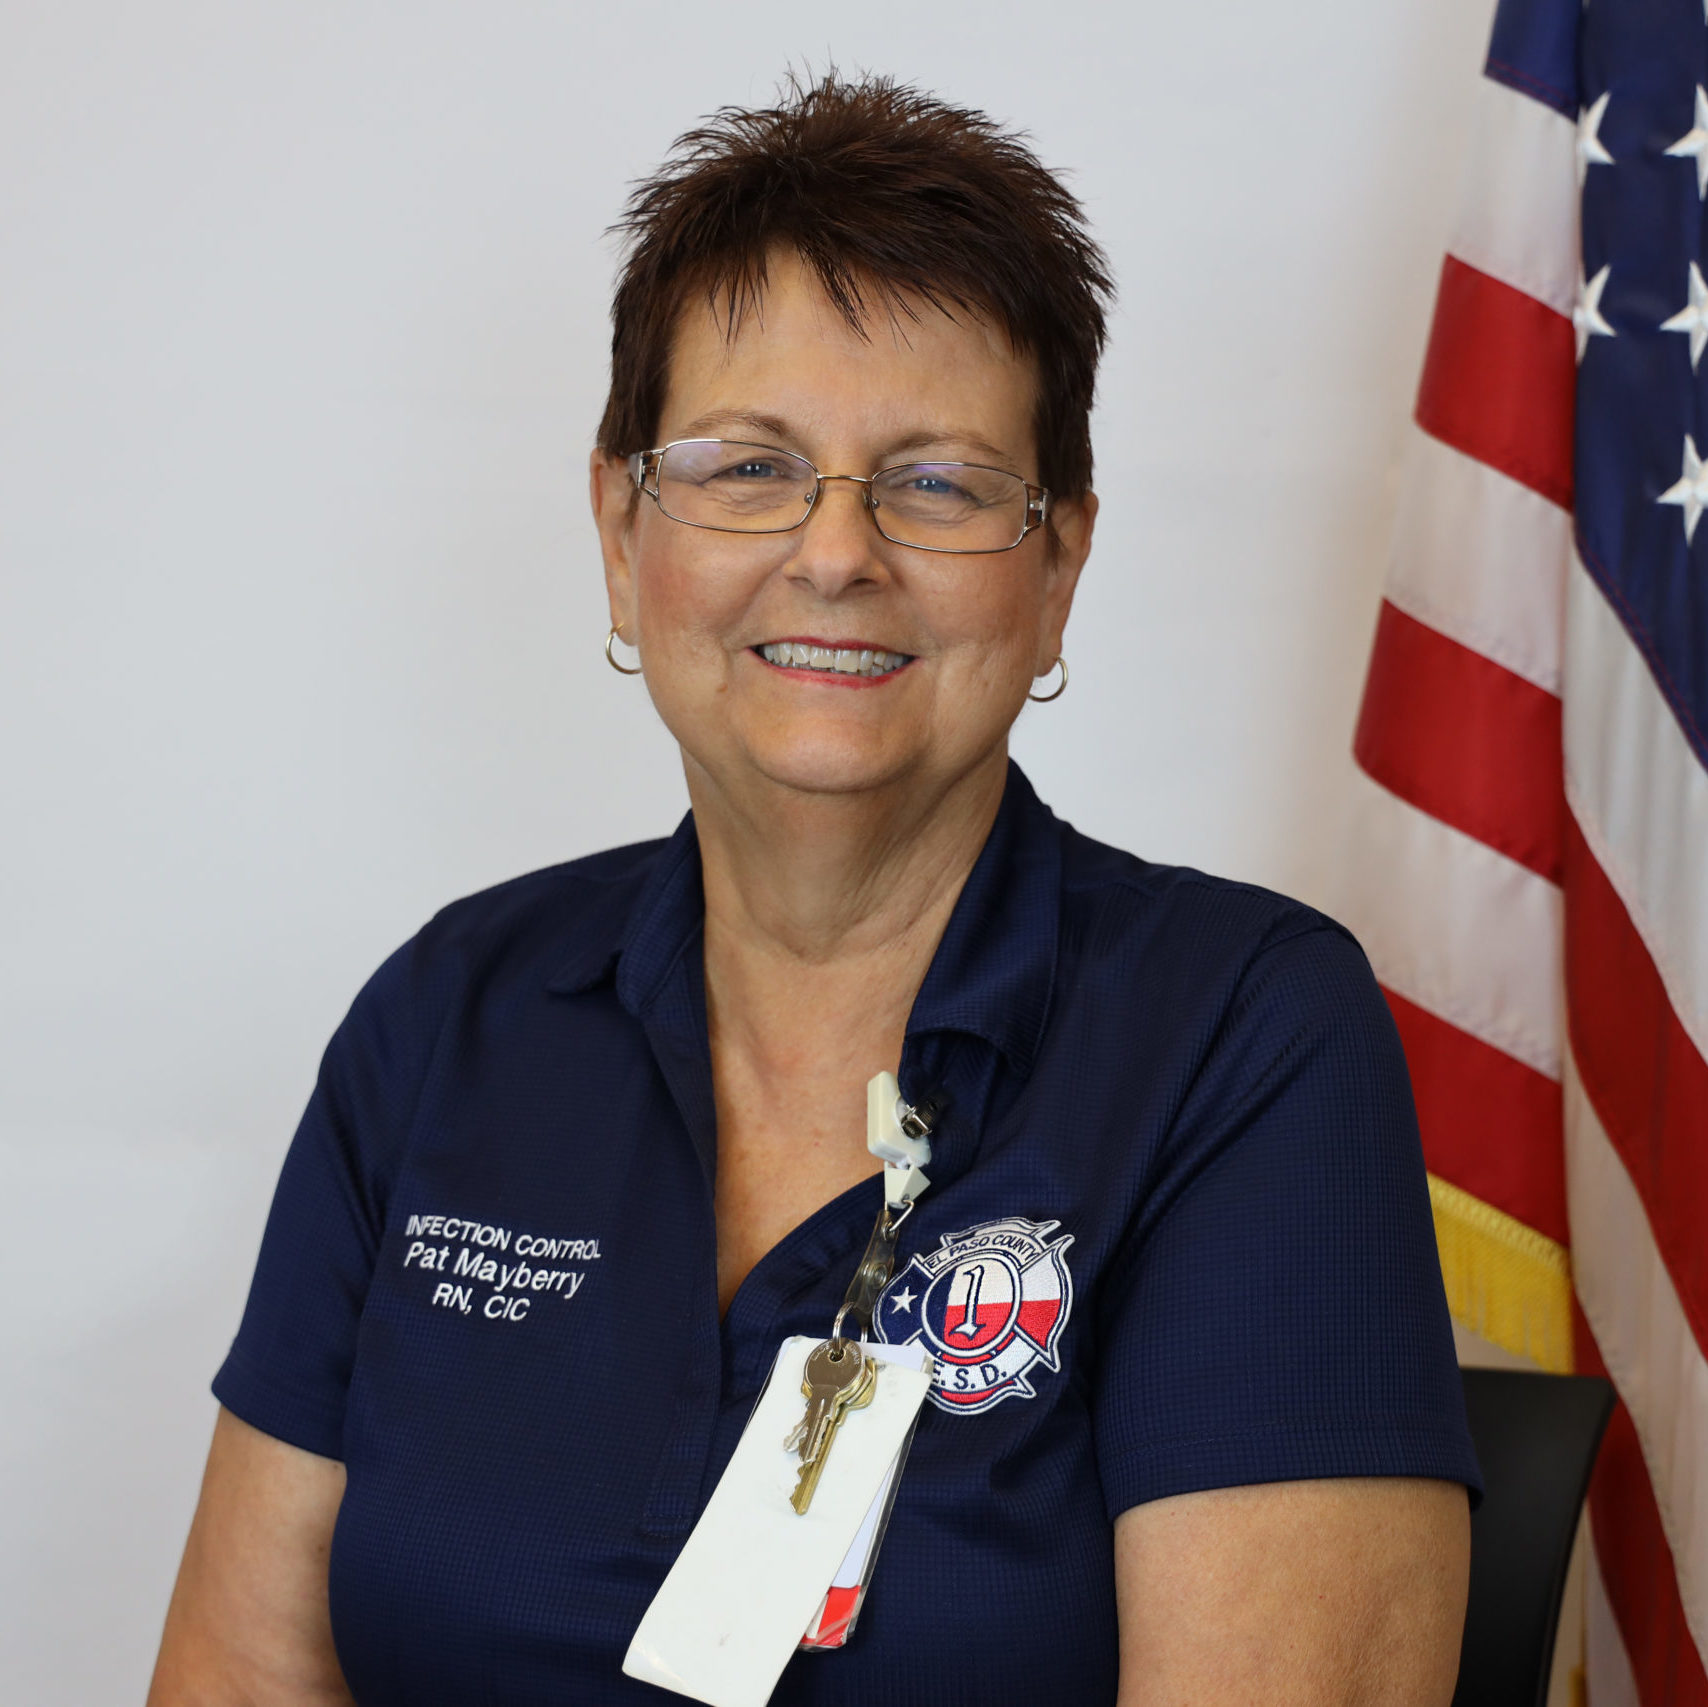 Pat Mayberry, RN, CIC - Infection Control Nurse